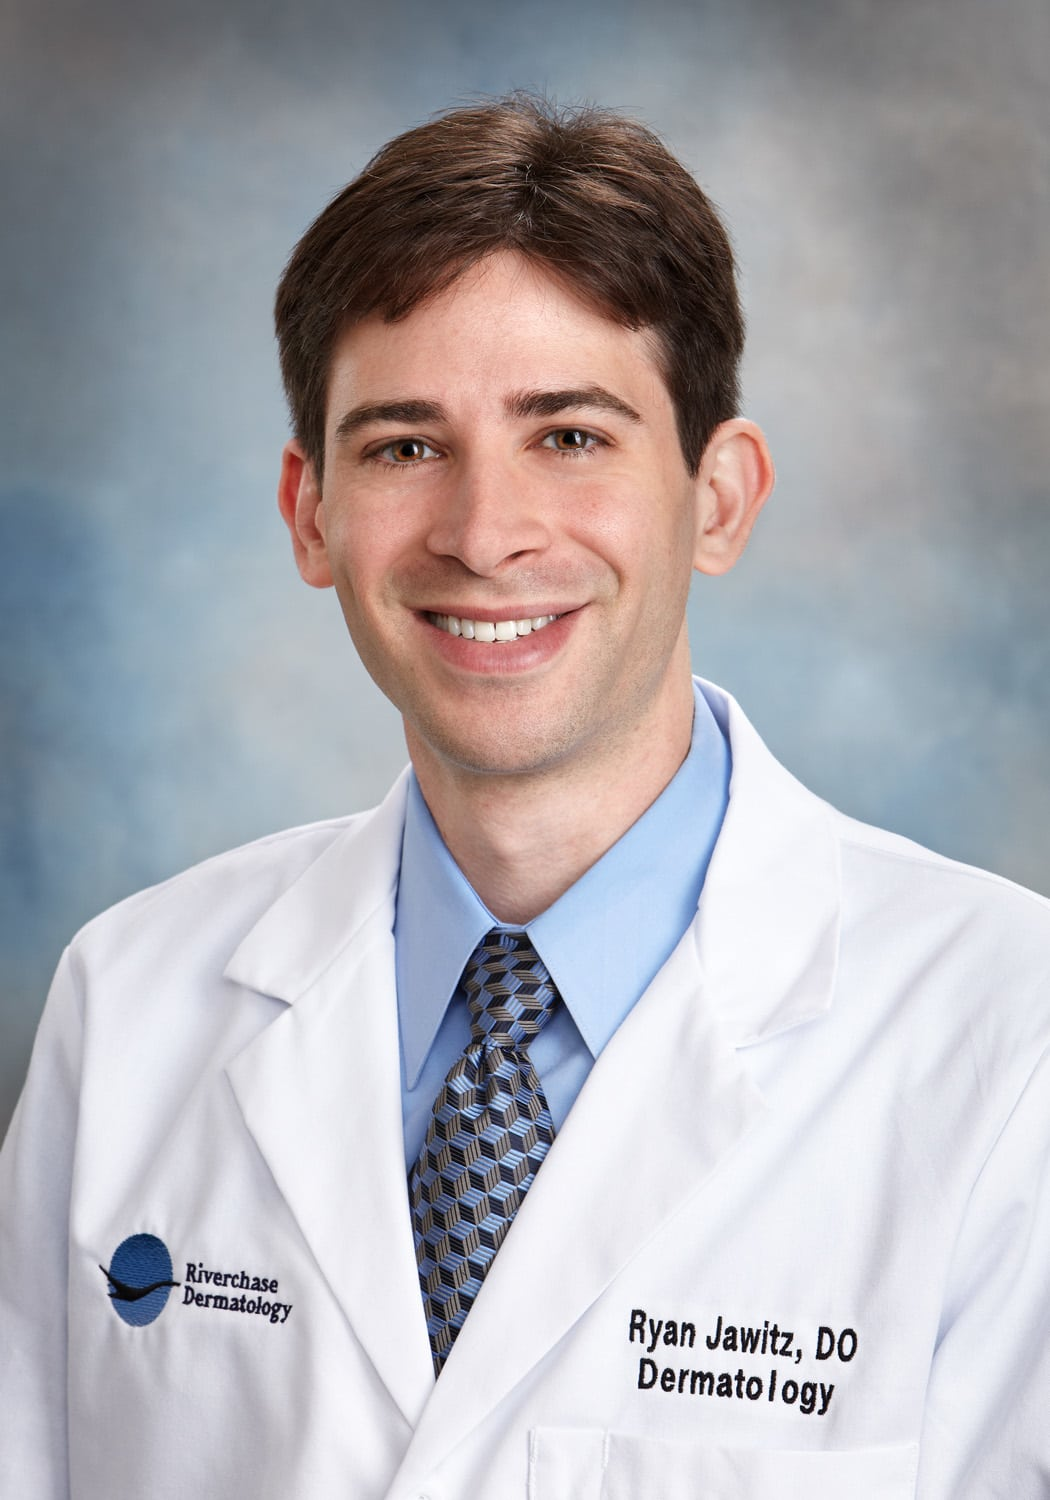 Ryan S Jawitz, DO Dermatology